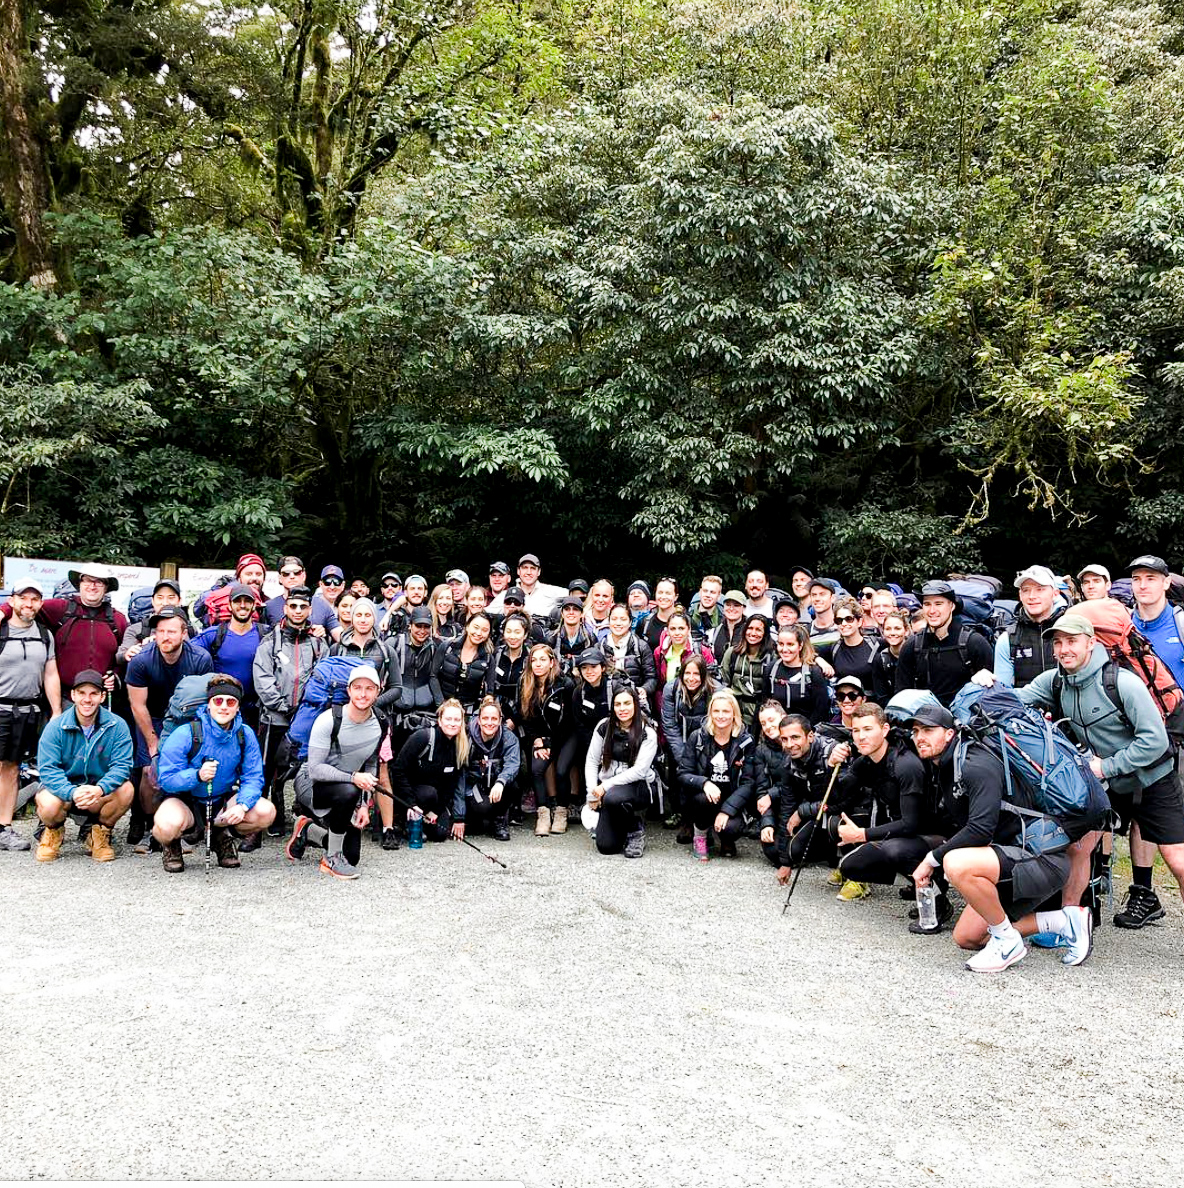 Sharp & Carter family at Routeburn Track, New Zealand 2018